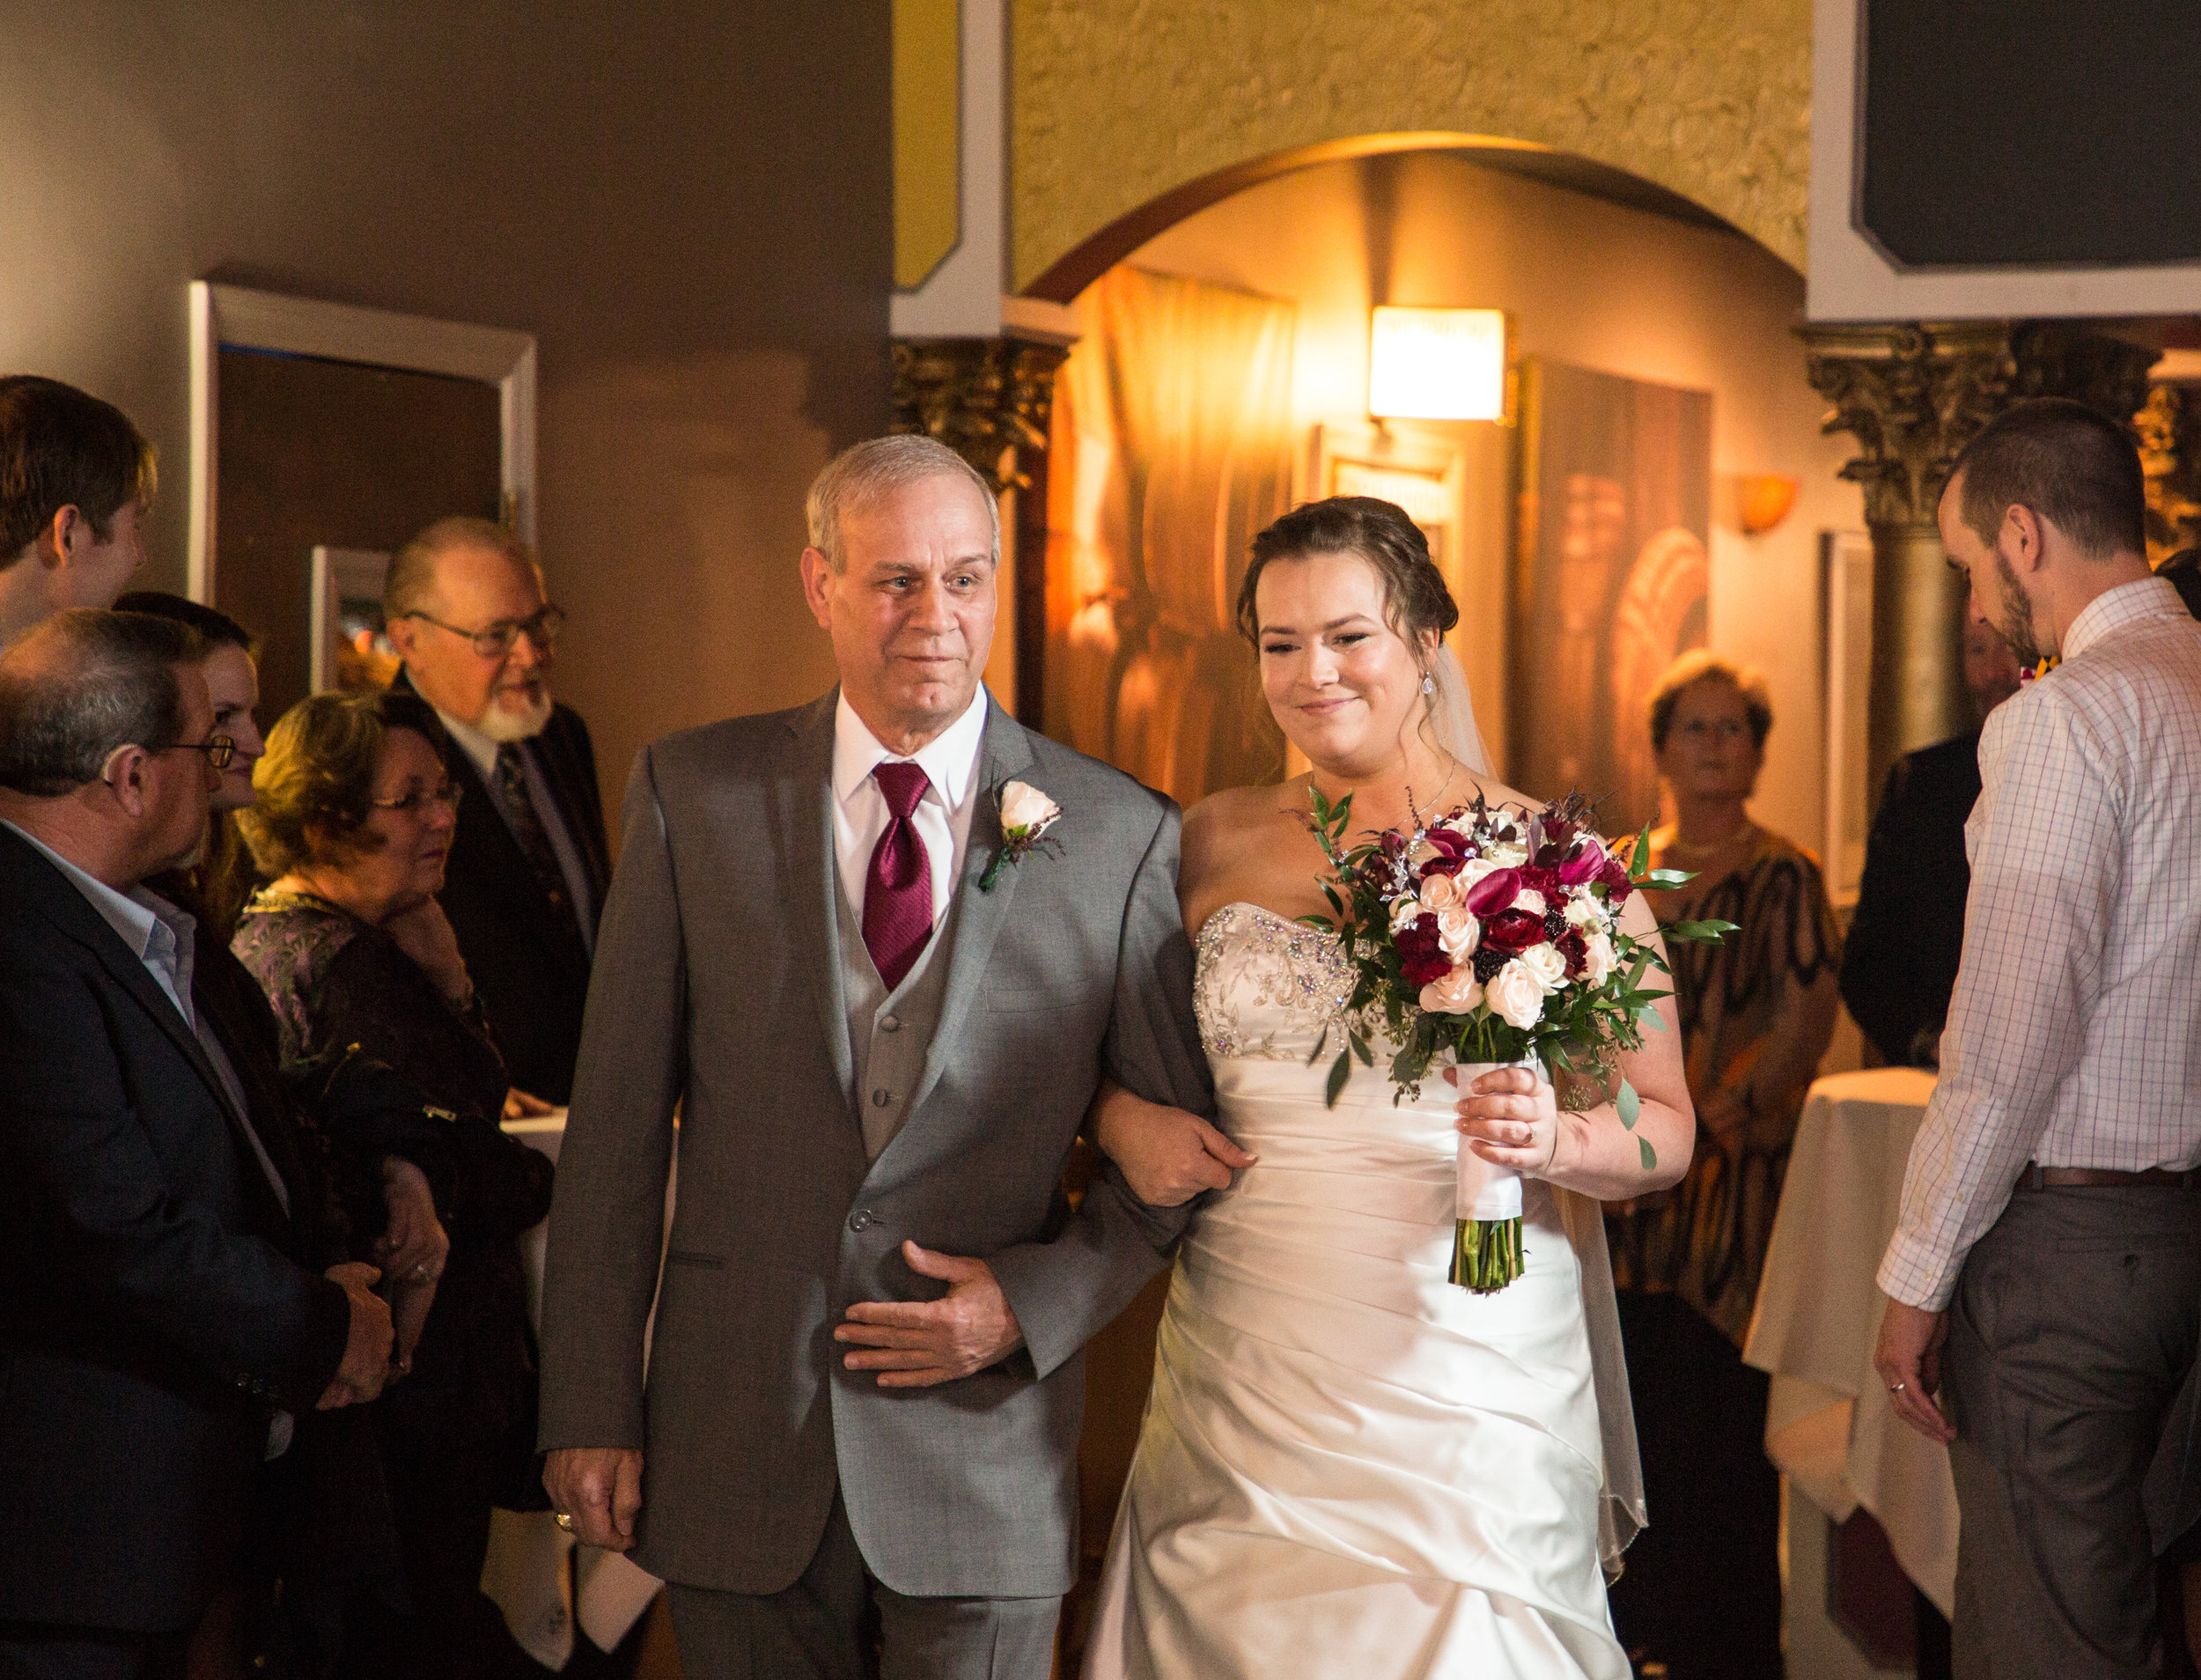 The bride is walked down the isle by her father at Ocean 13 in Ocean City.